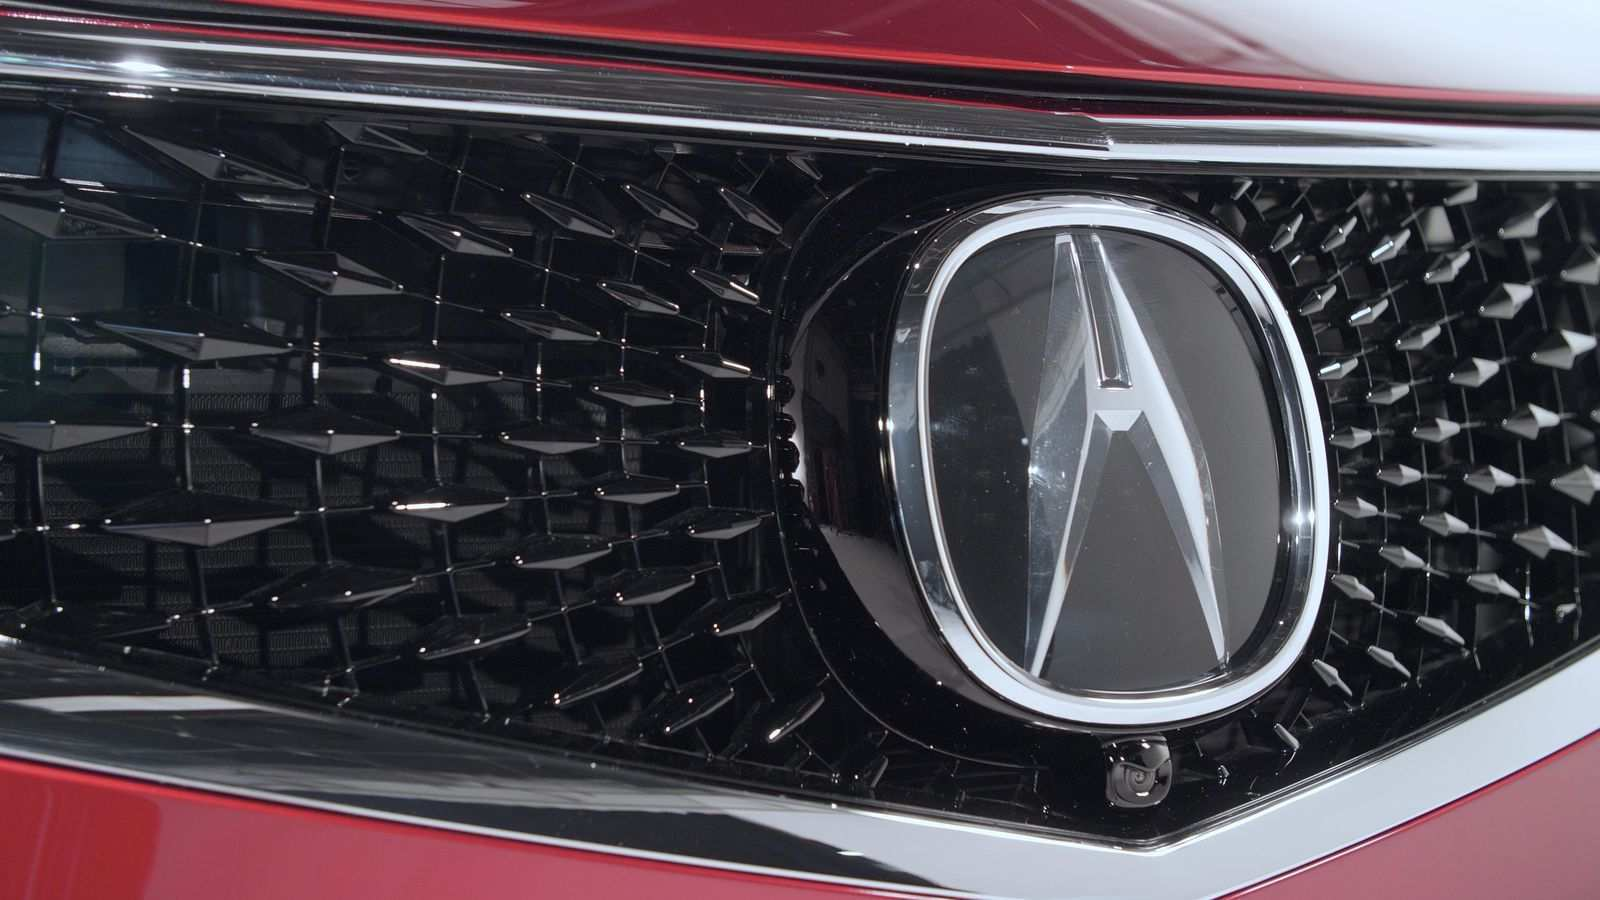 48 Best 2020 Acura Rdx V6 Turbo Specs And Review